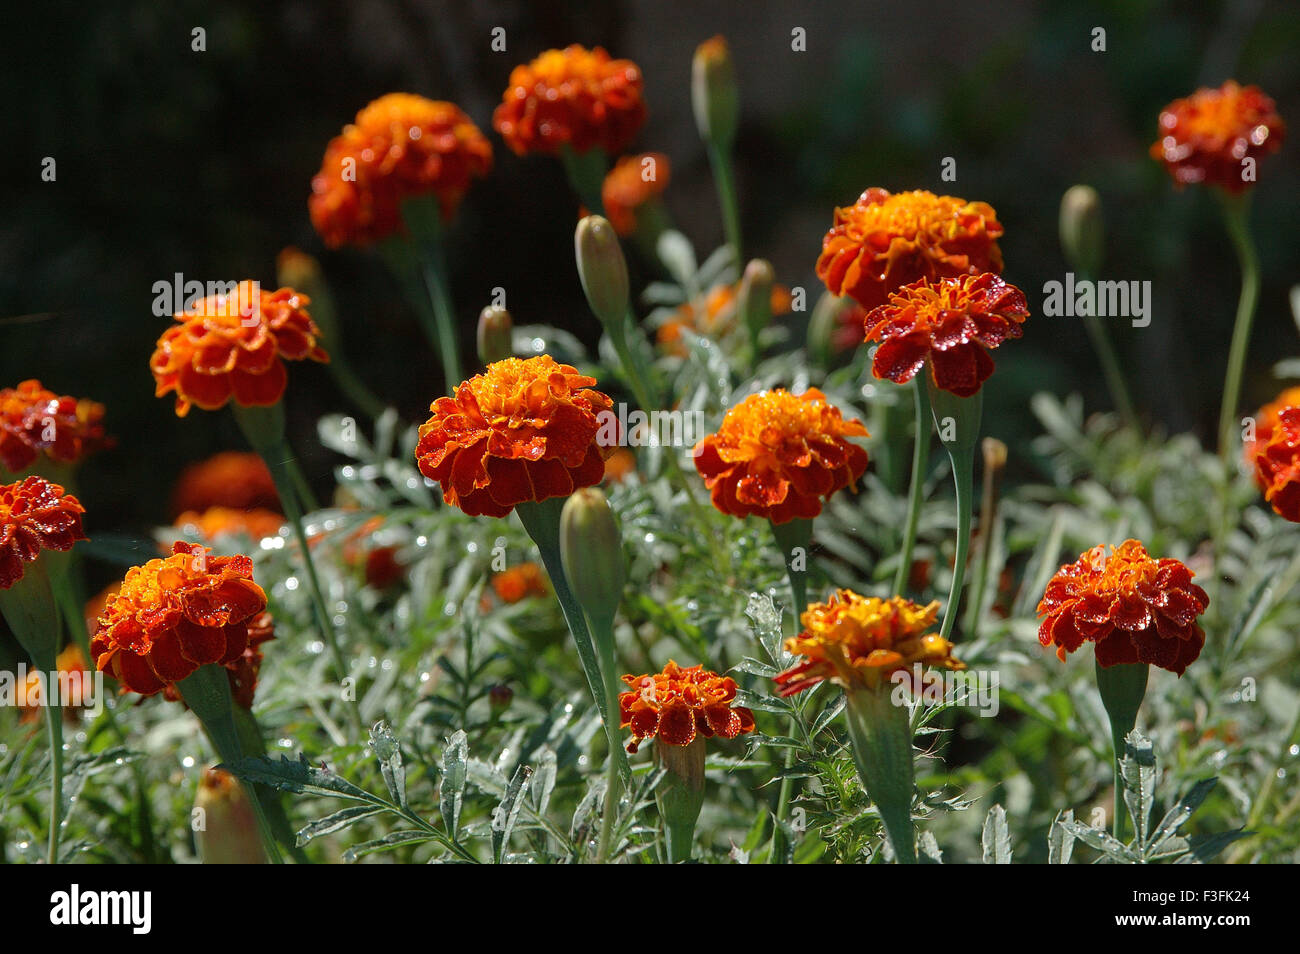 Marigold in field Latin Name Tagetes spp - Stock Image